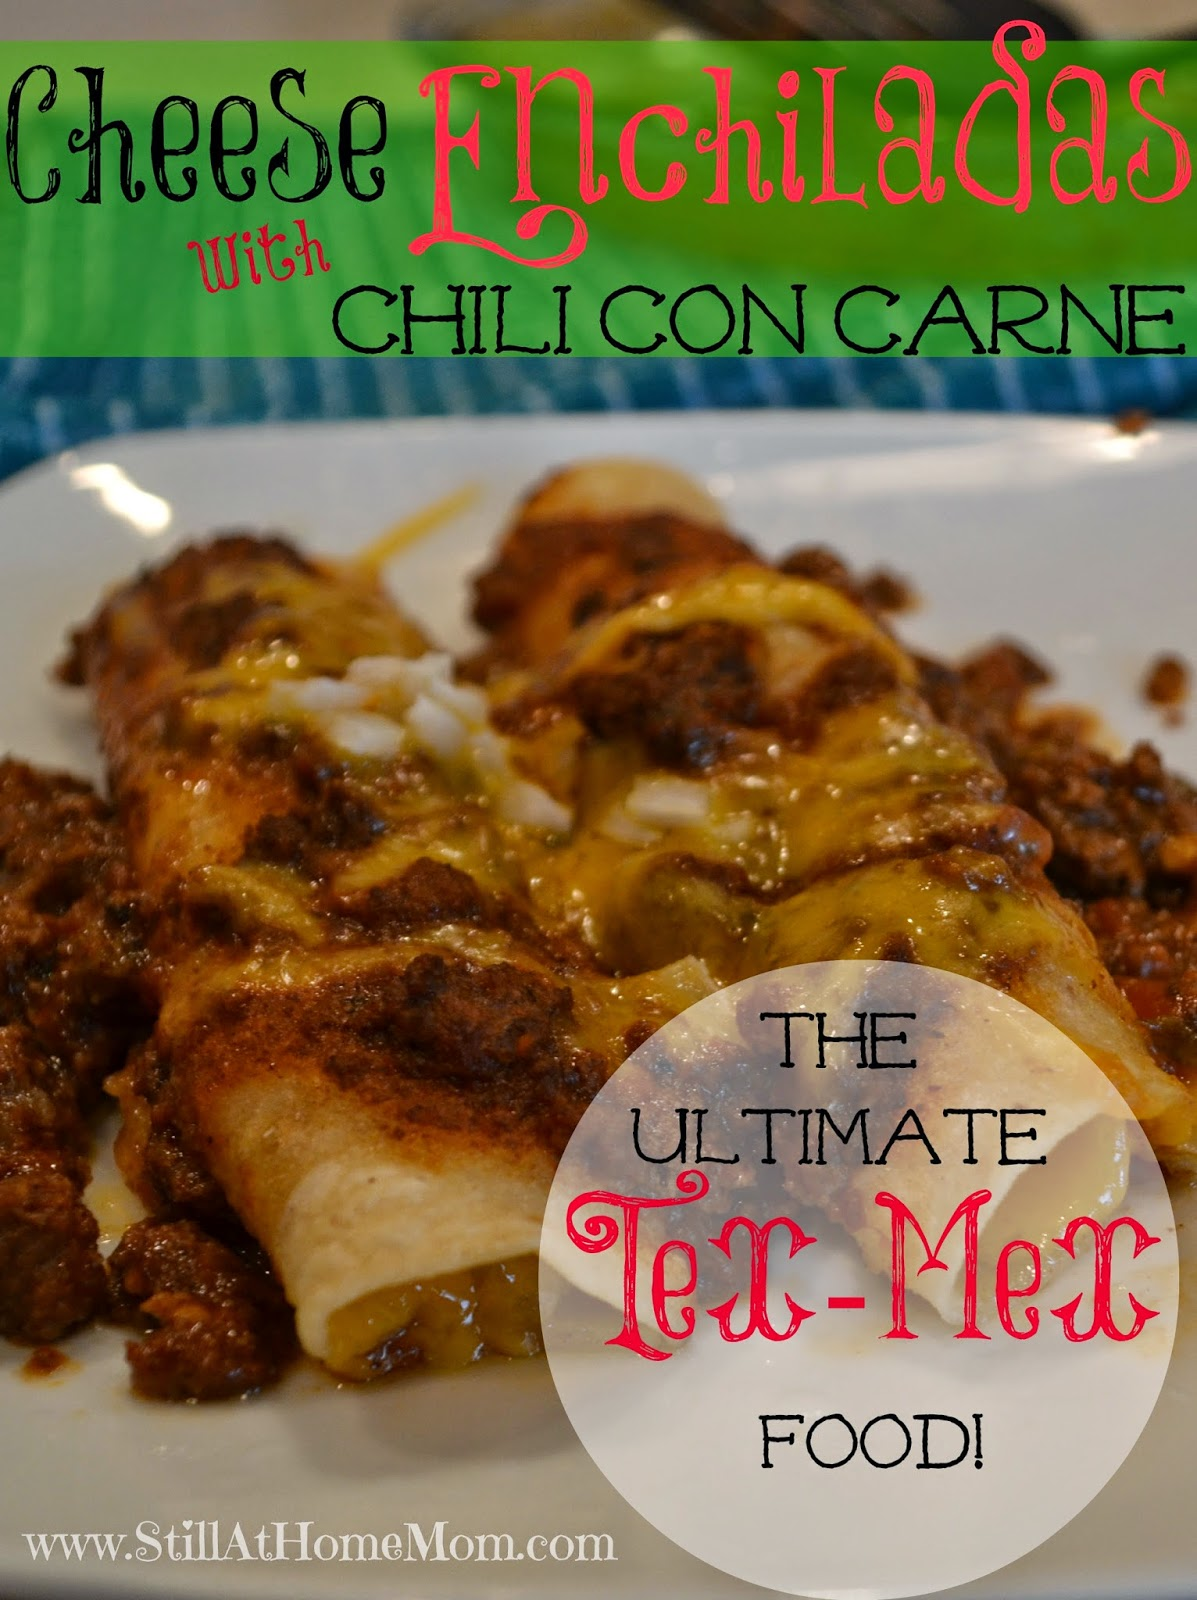 ... : The Ultimate Tex-Mex Food: Cheese Enchiladas with Chili Con Carne